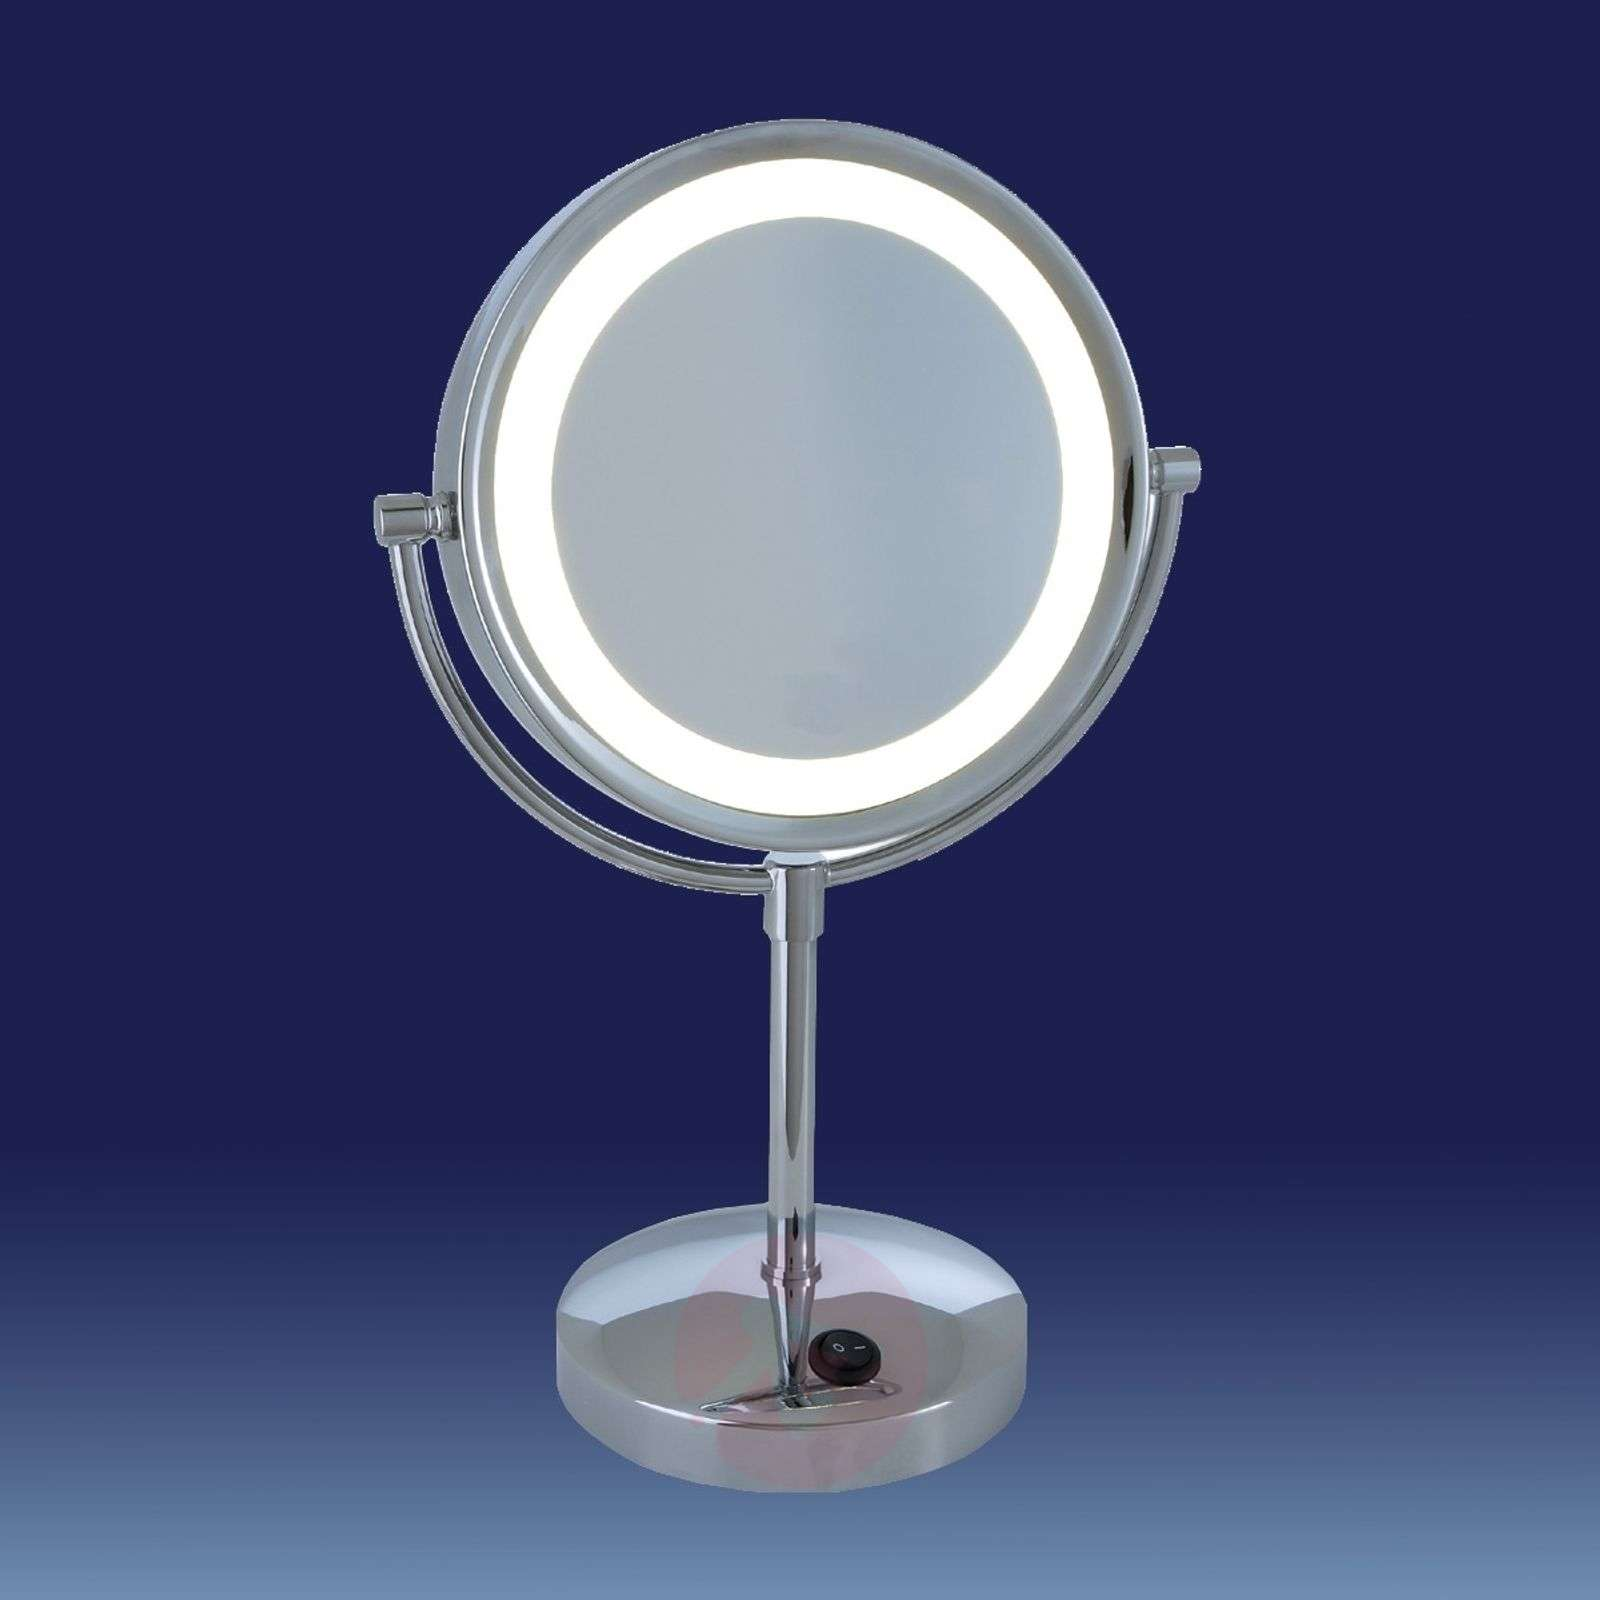 LED-illuminated cosmetic mirror London-8507821-01